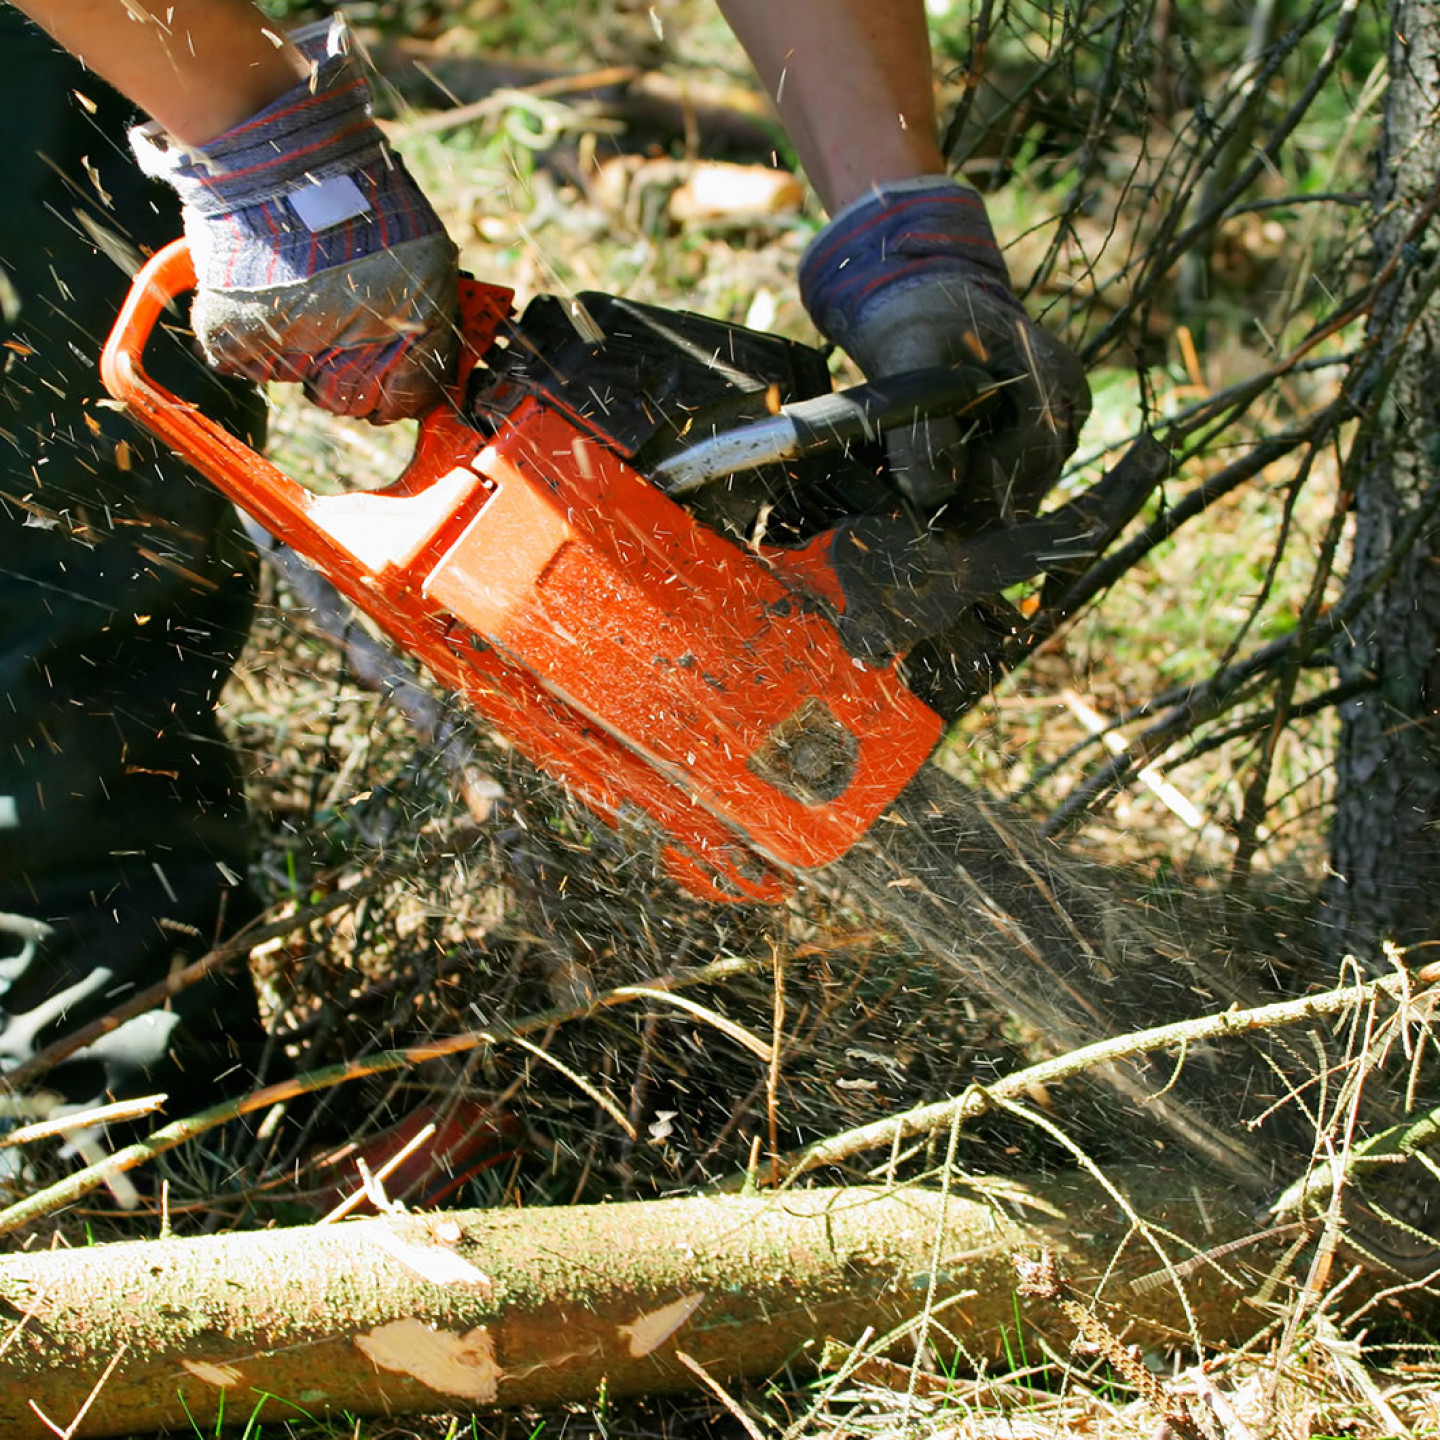 Keep your trees neat and trim with regular pruning